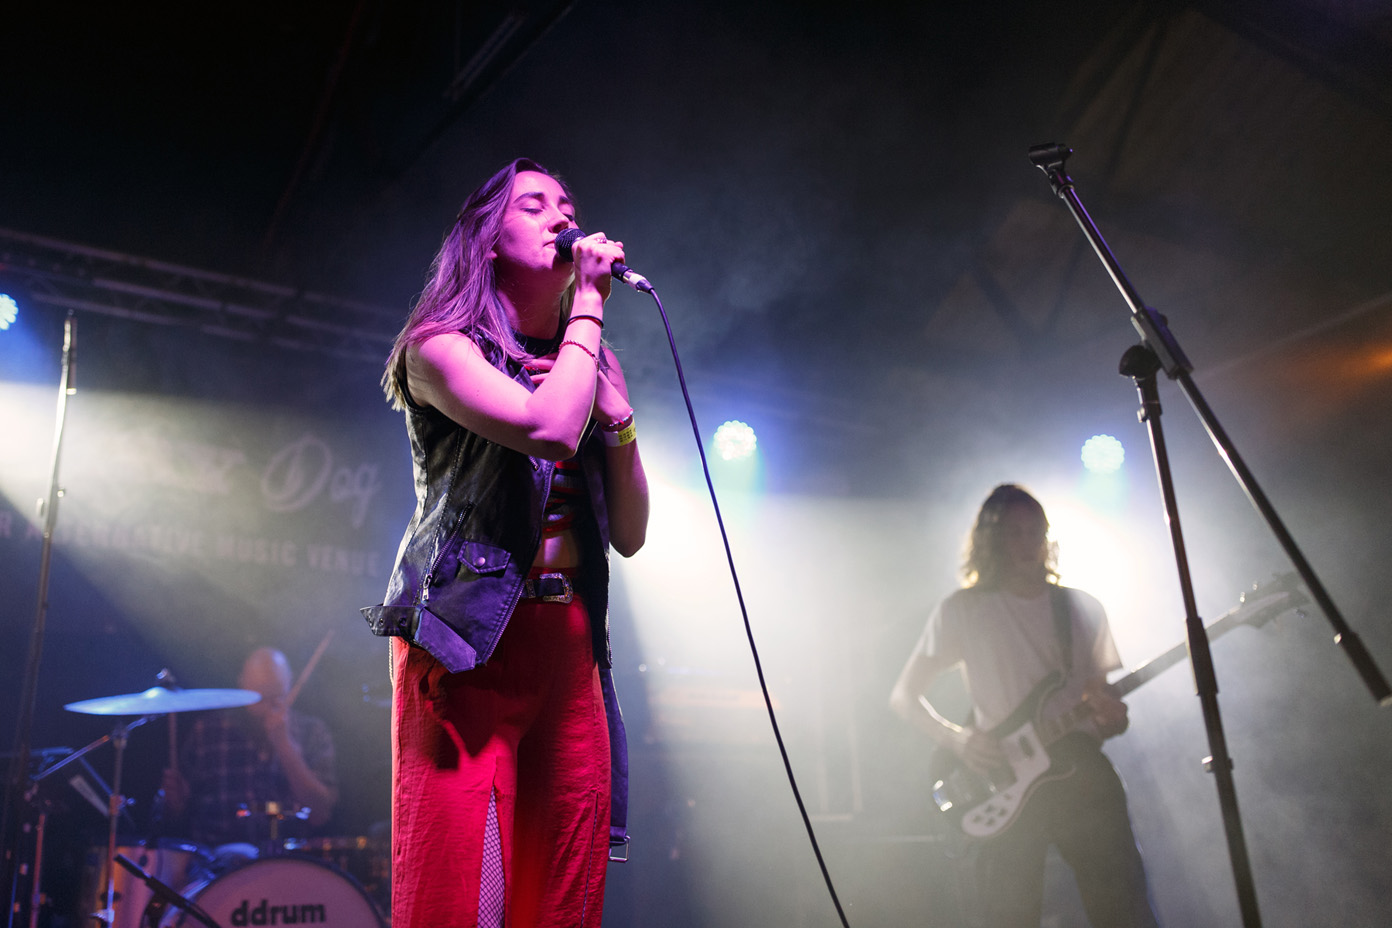 Yonaka performing live at the second annual 2Q Festival on 1 April 2017. Photo: Katy Blackwood